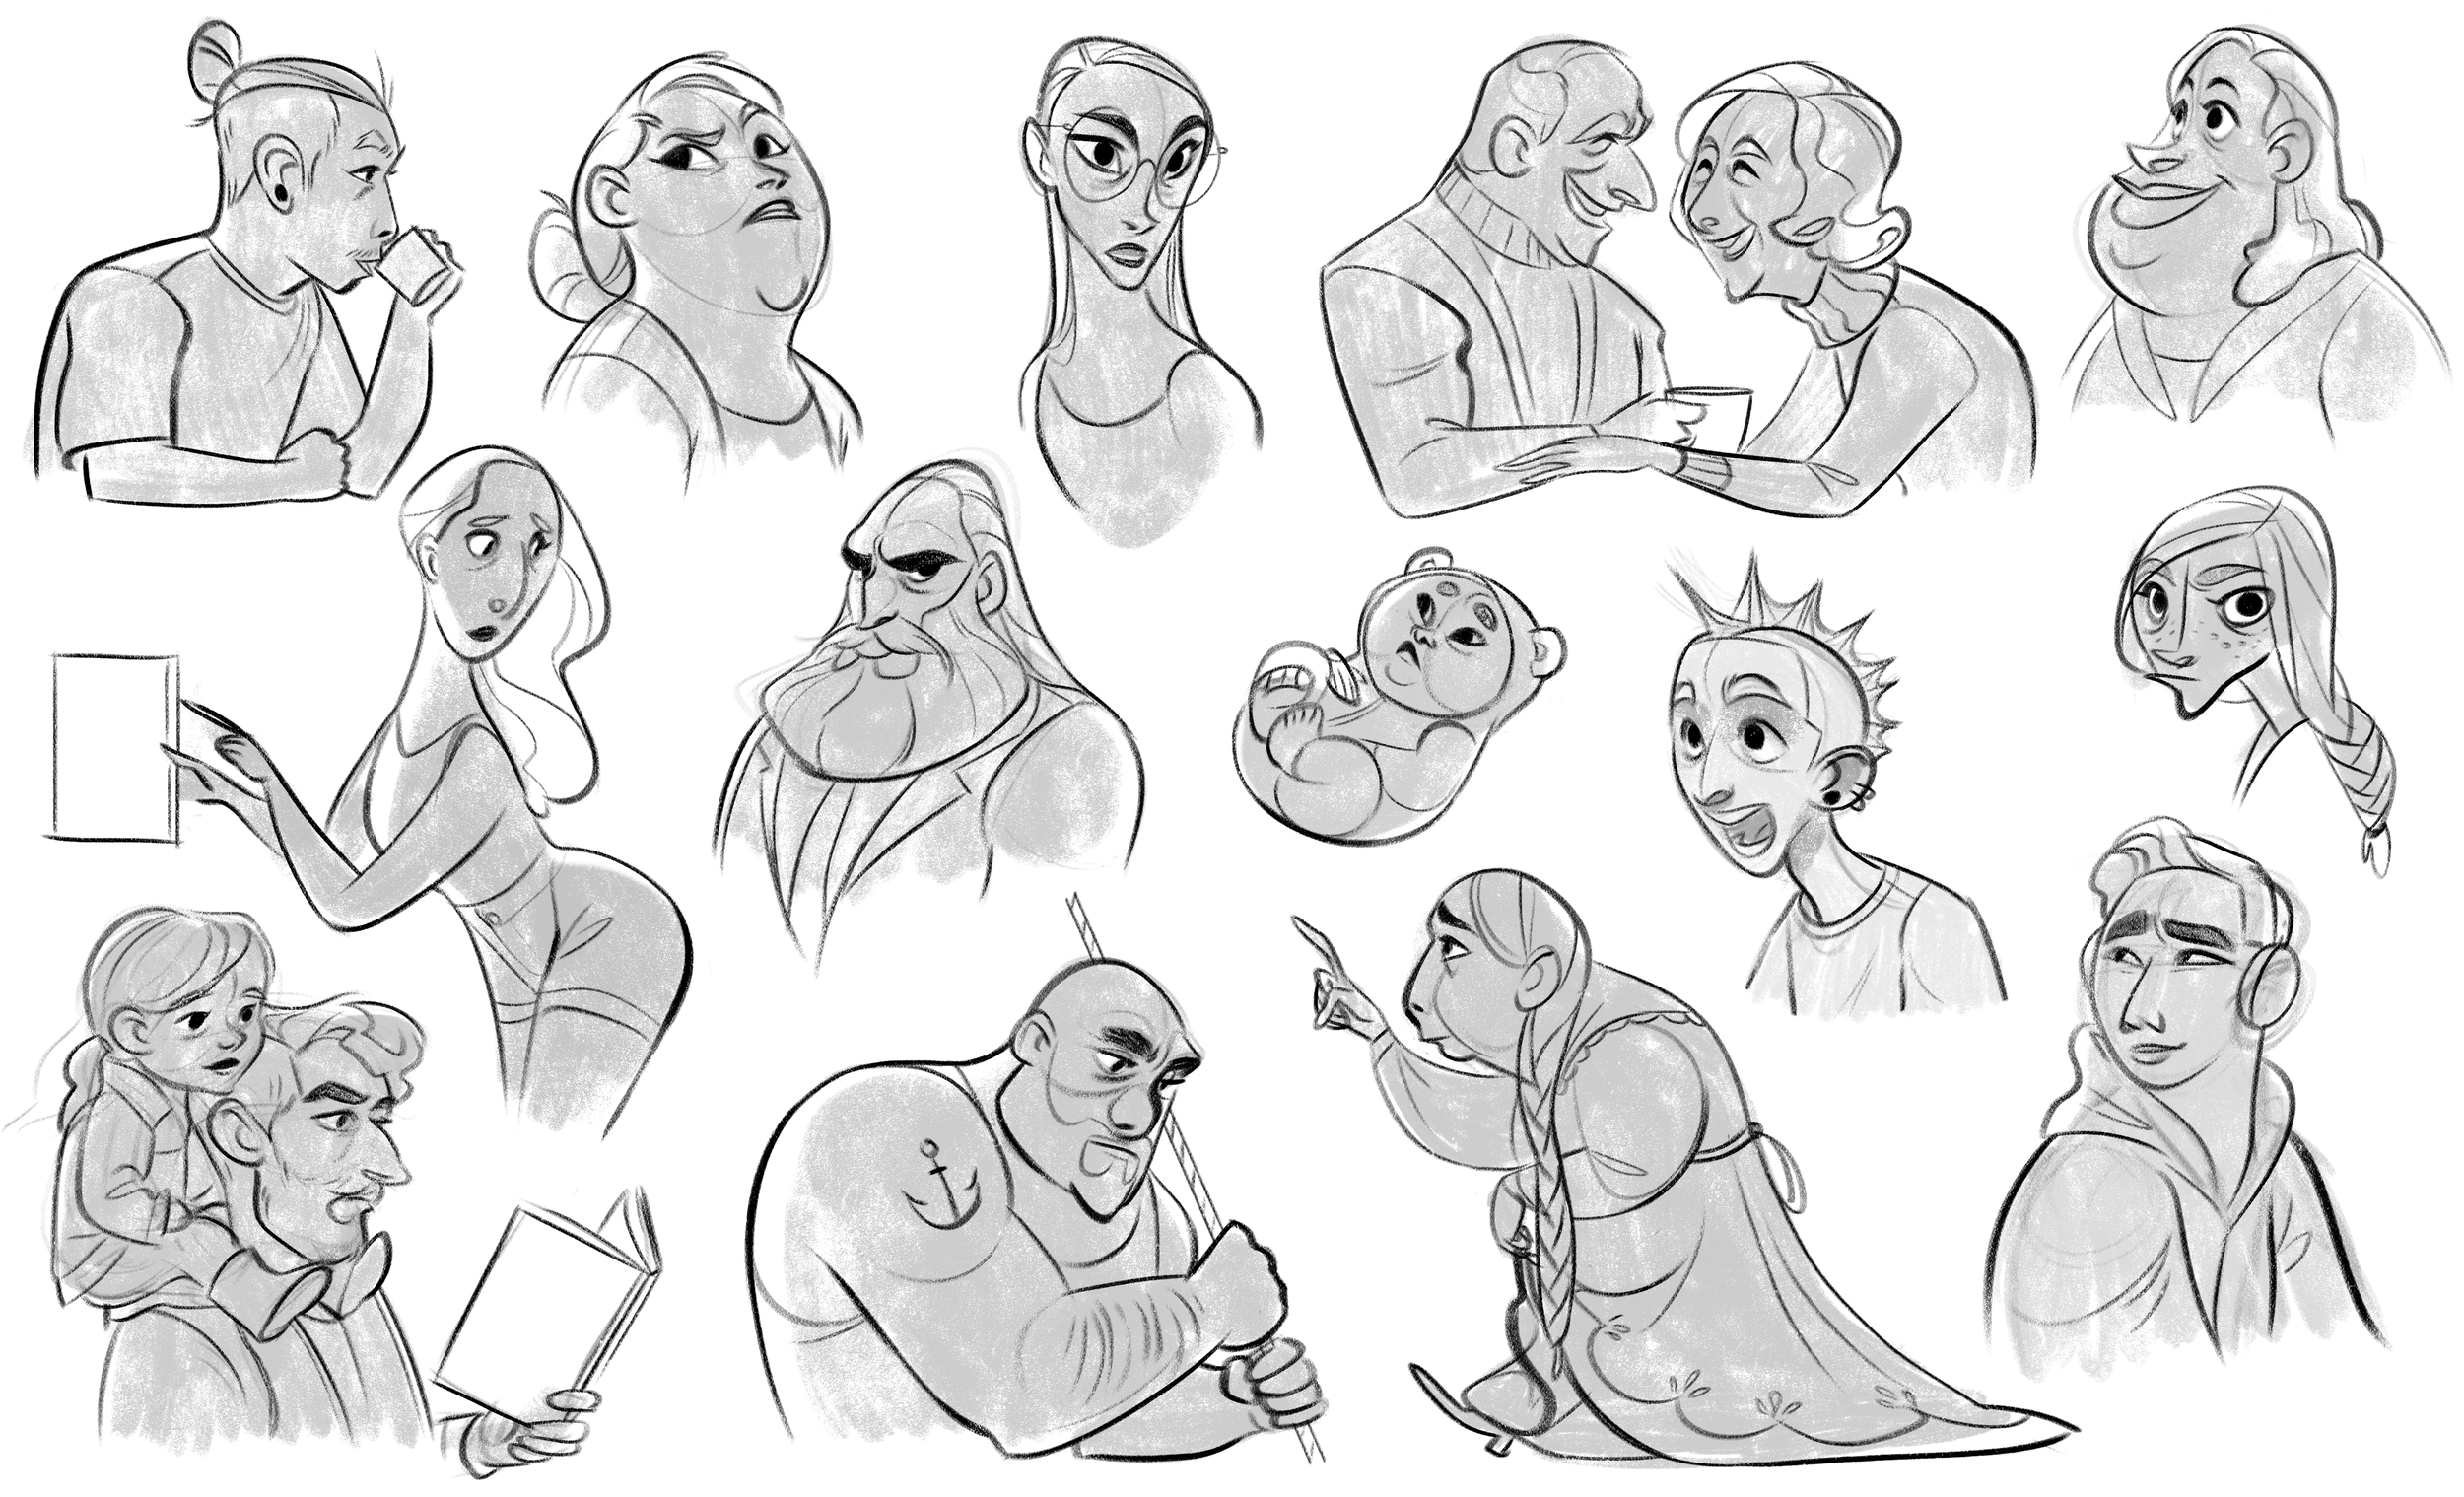 charactersketchesbus2.png